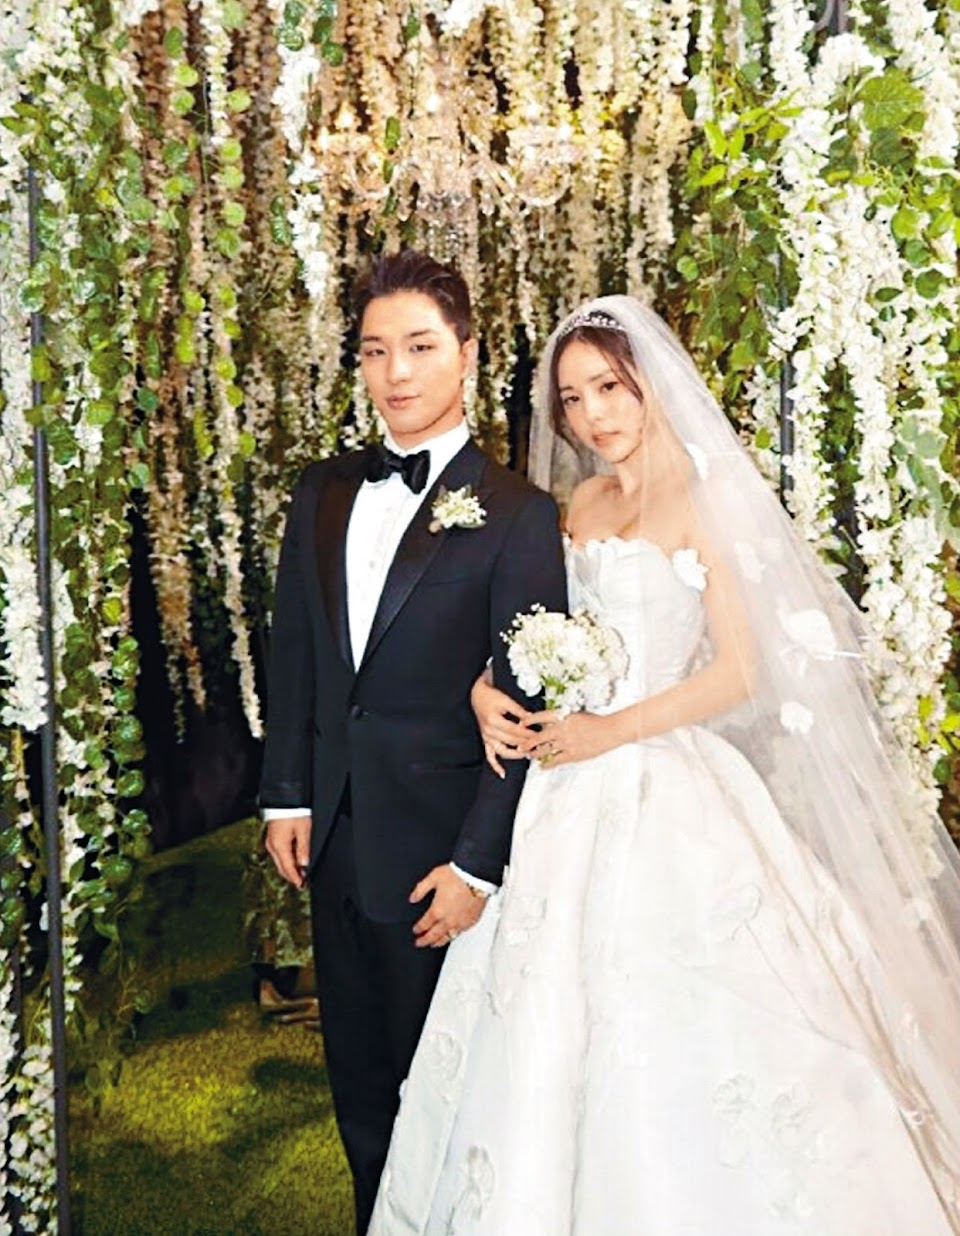 Taeyang_MinHyoRin_Wedding